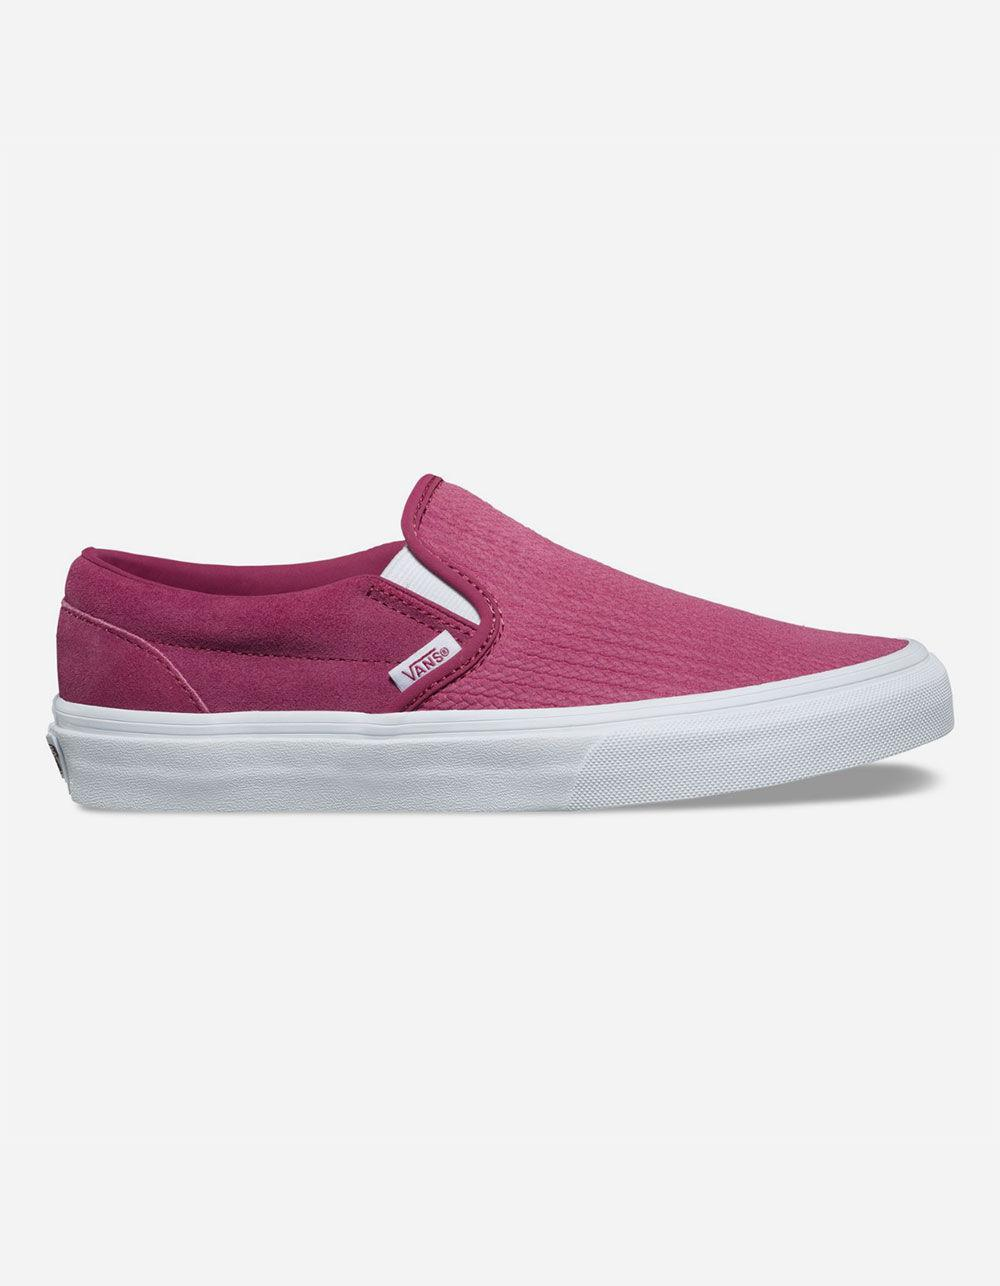 0197542c97 Vans - Purple Suede Canvas Classic Slip-on Wine Womens Shoes - Lyst. View  fullscreen